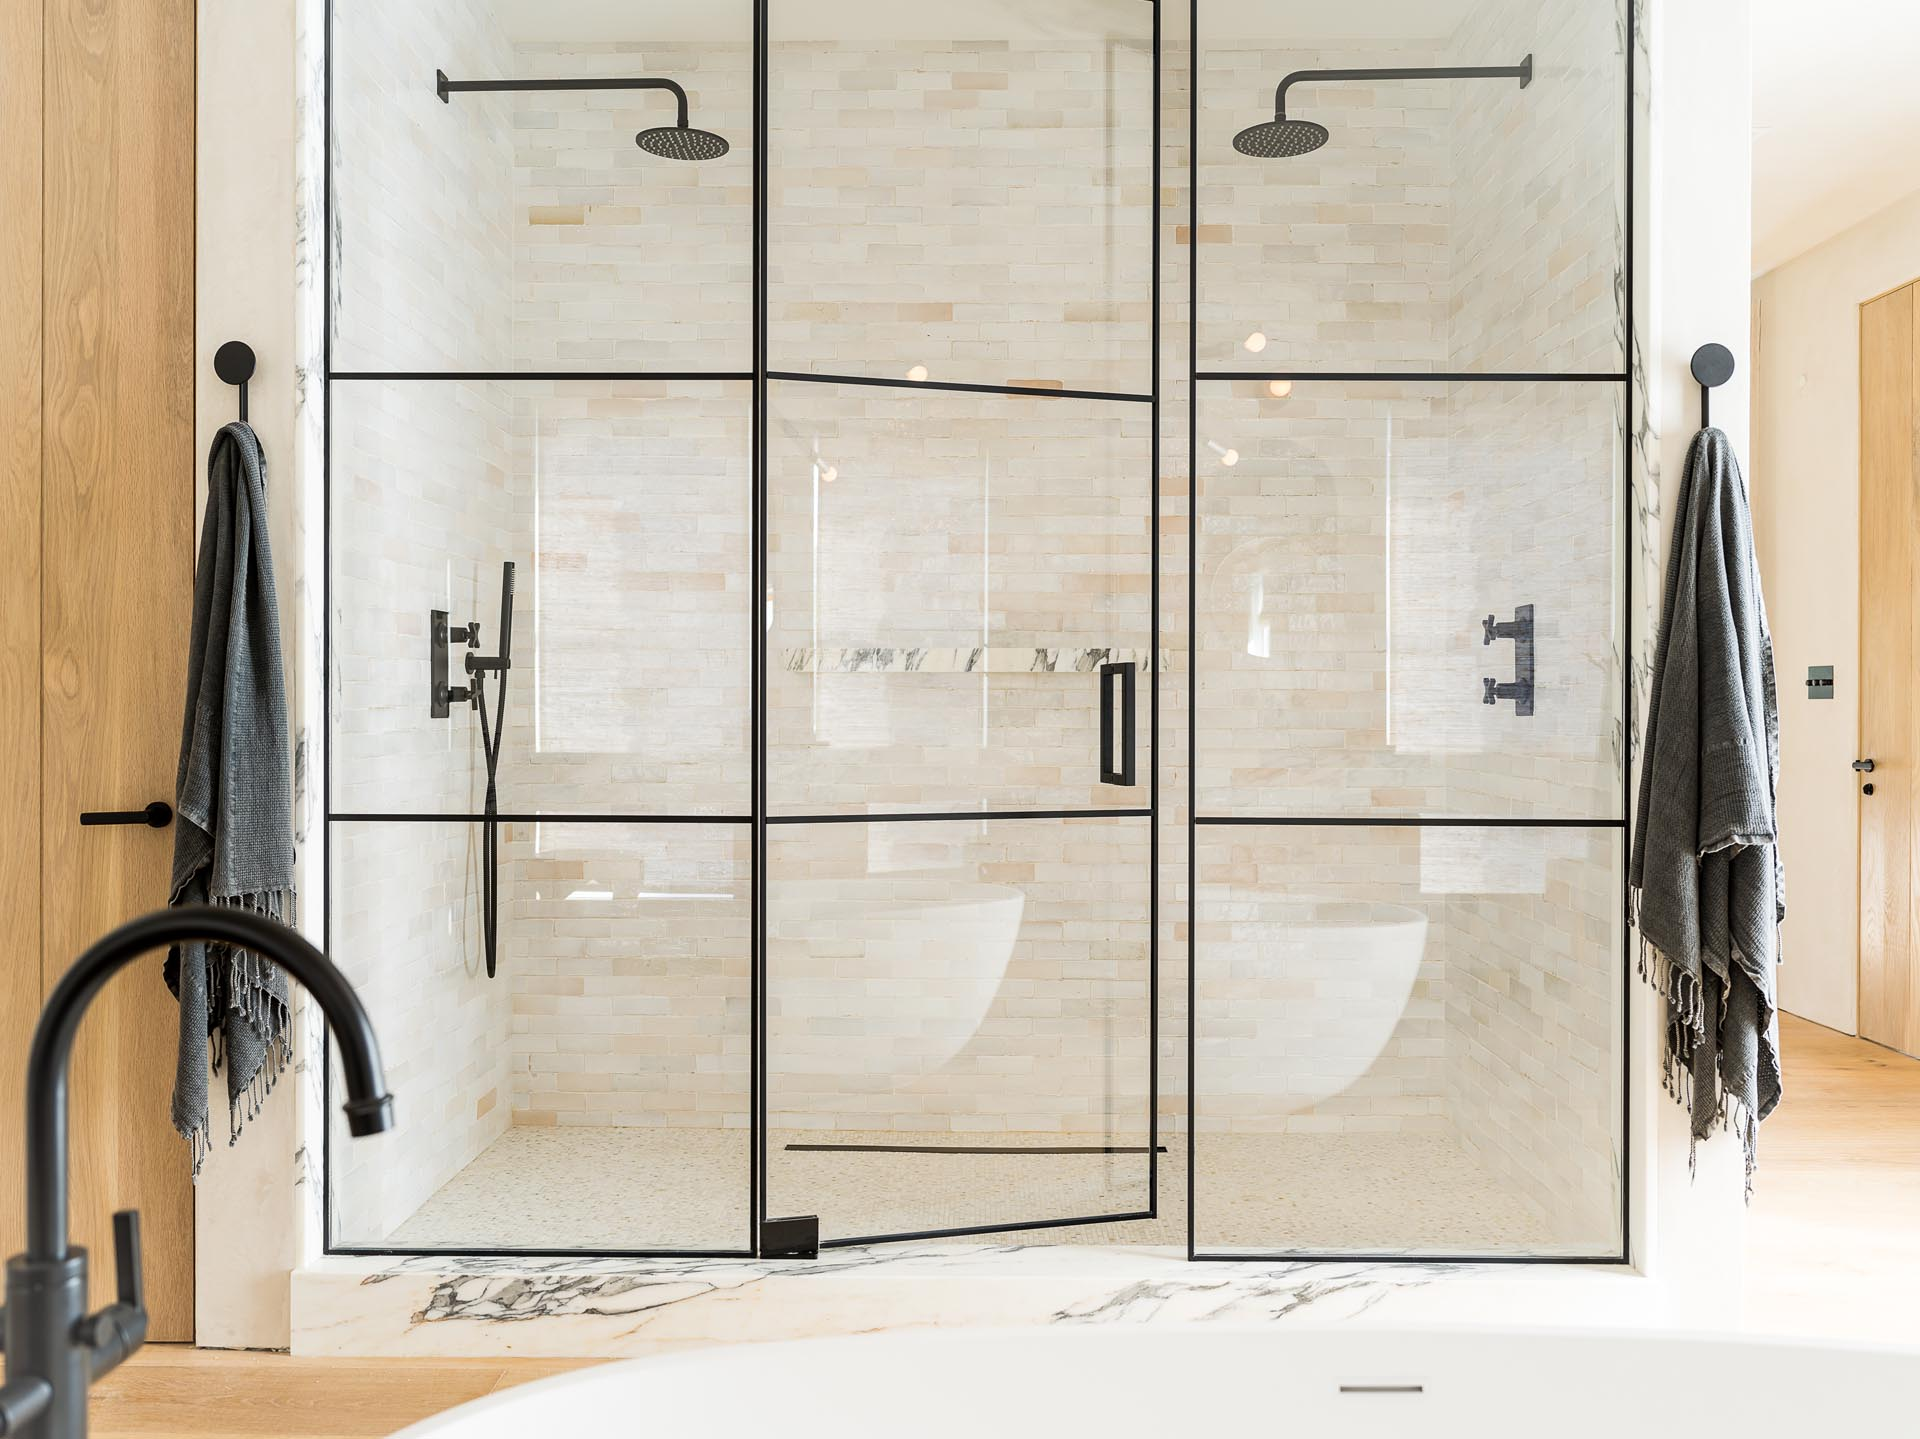 A glass enclosed two person shower with black frames and hardware.